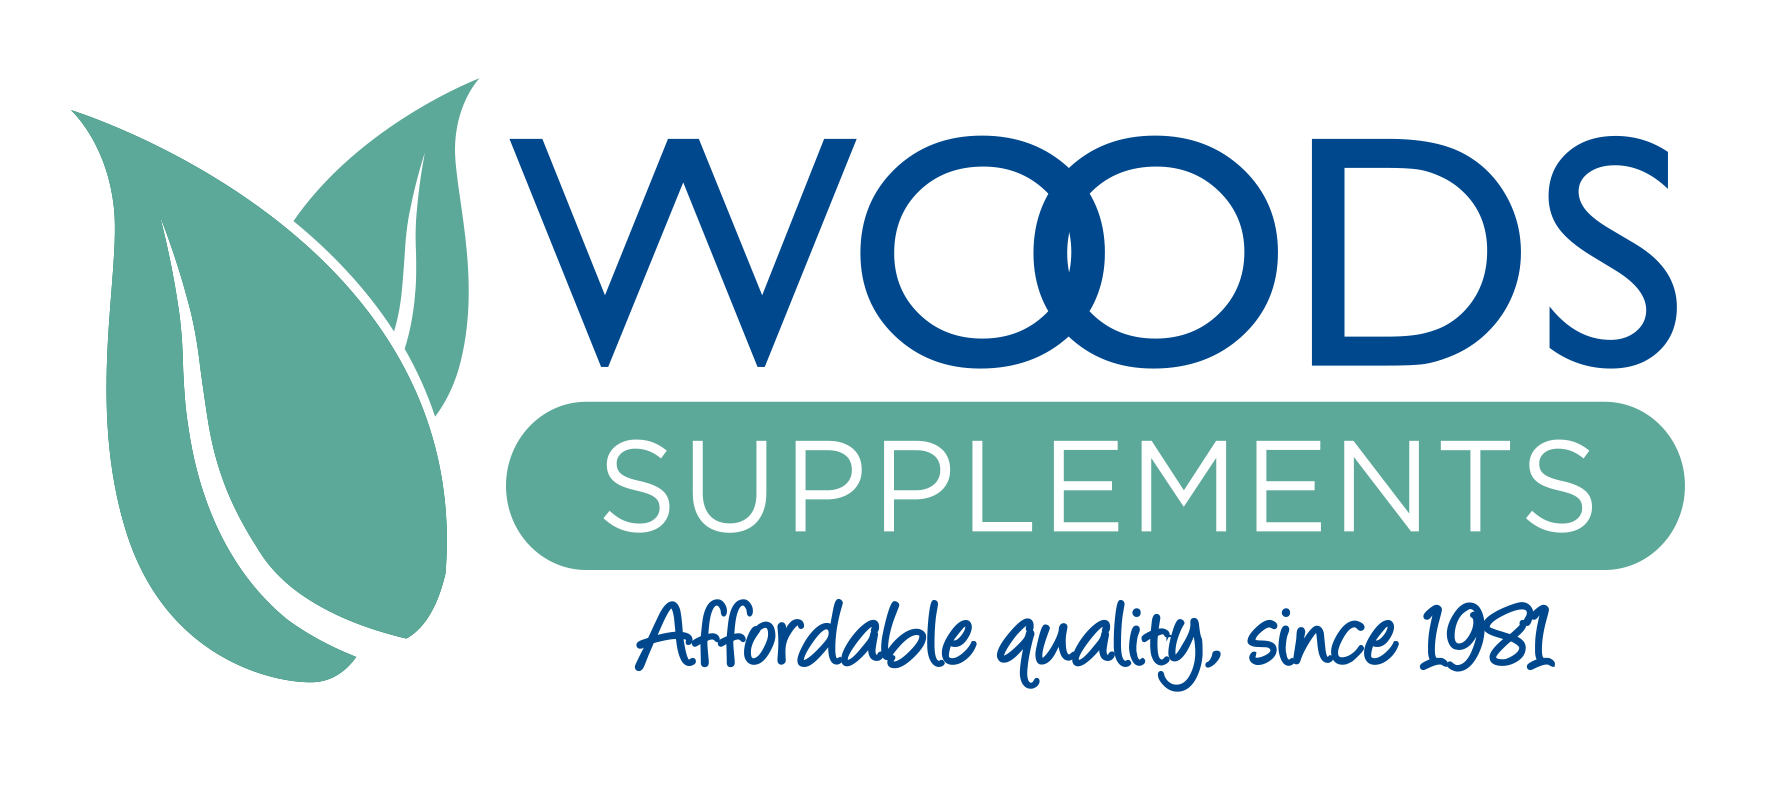 Woods supplements logo small